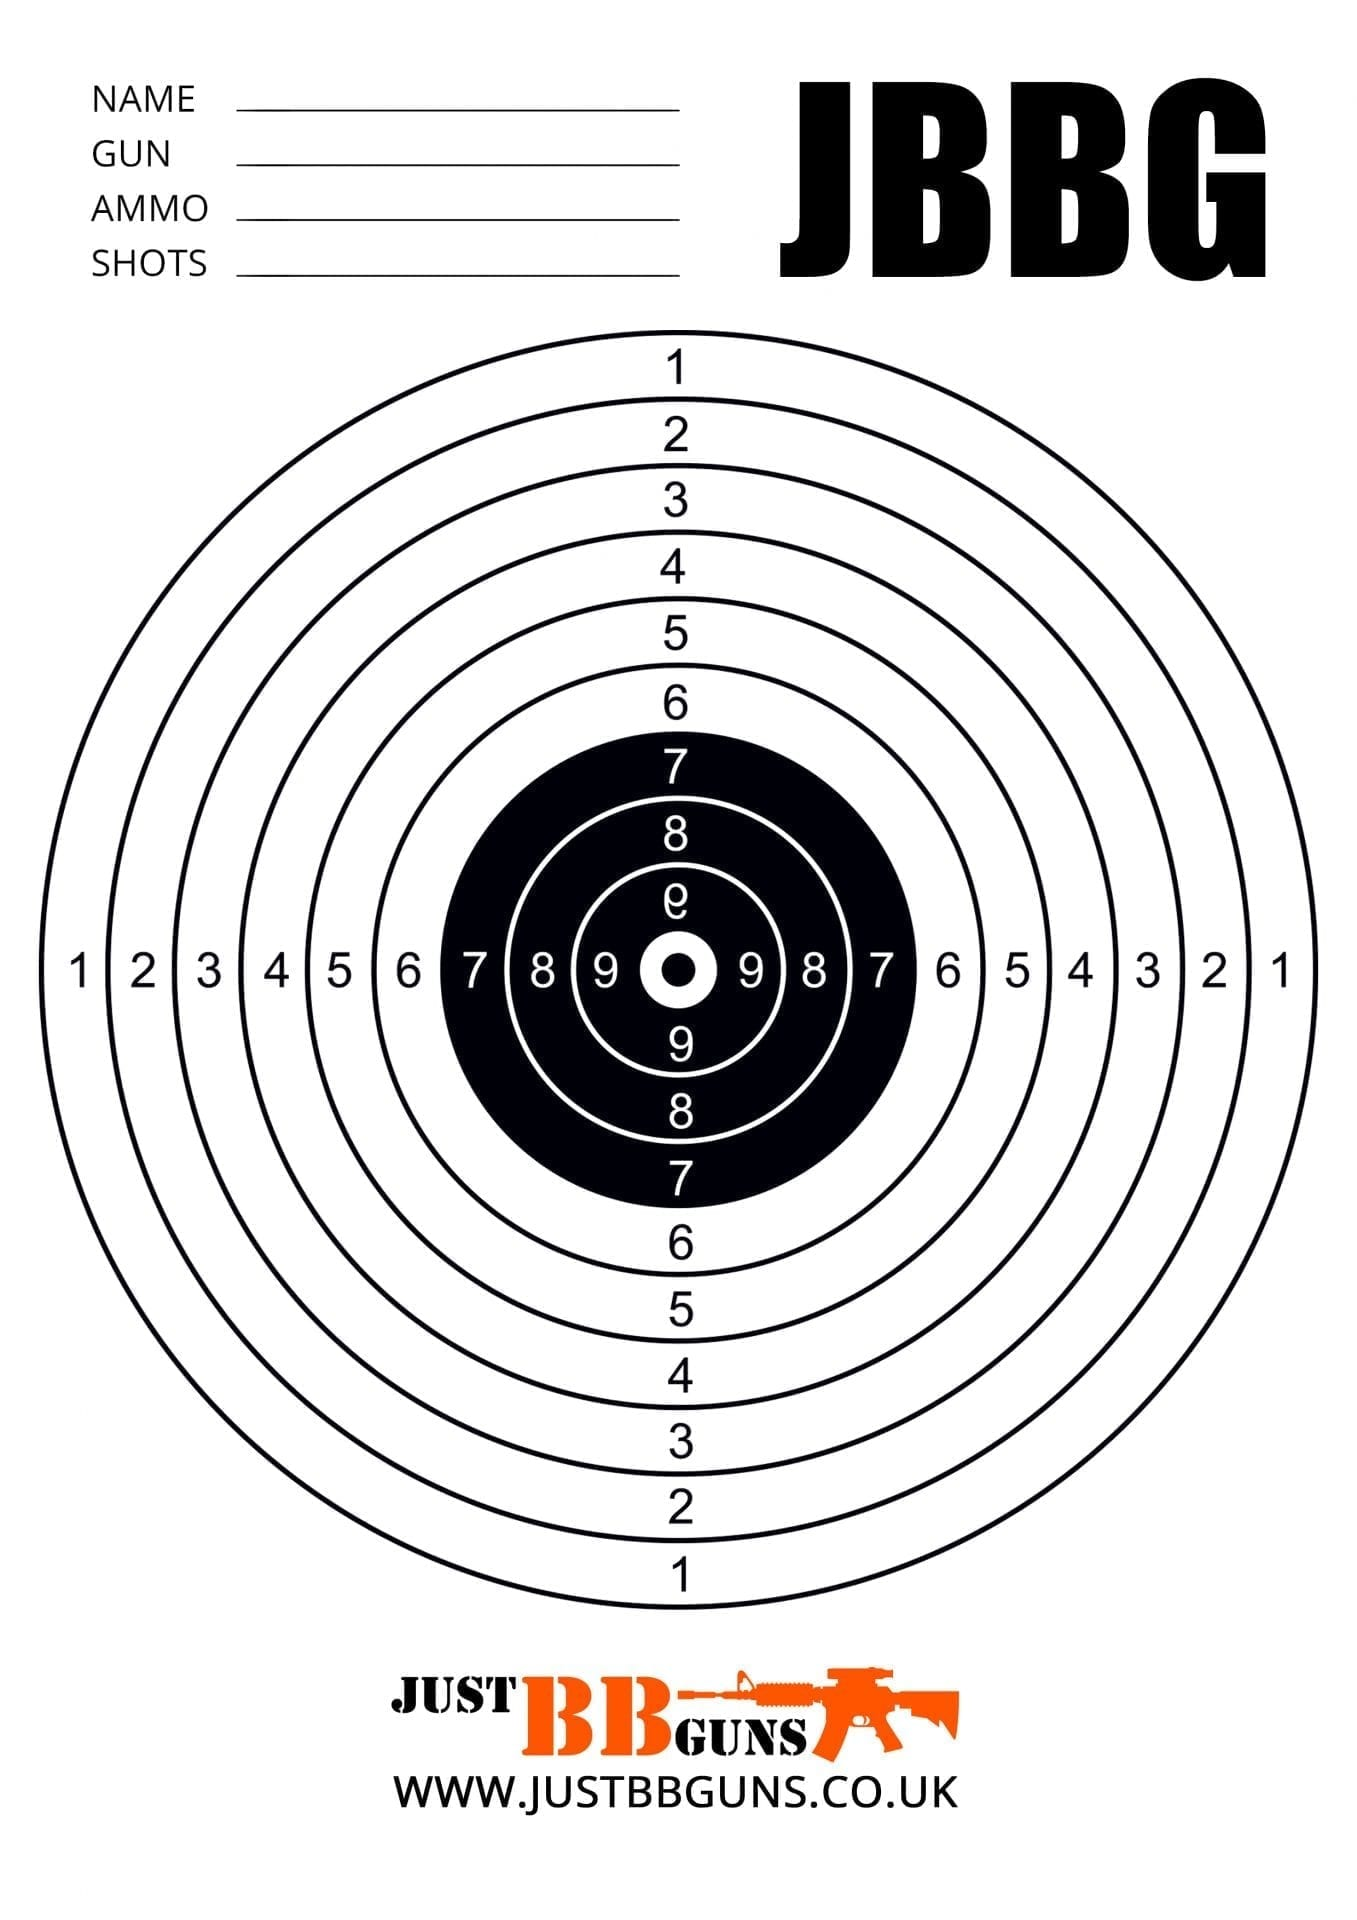 Free Targets Just Bb Guns Airsoft Targets To Download And Print